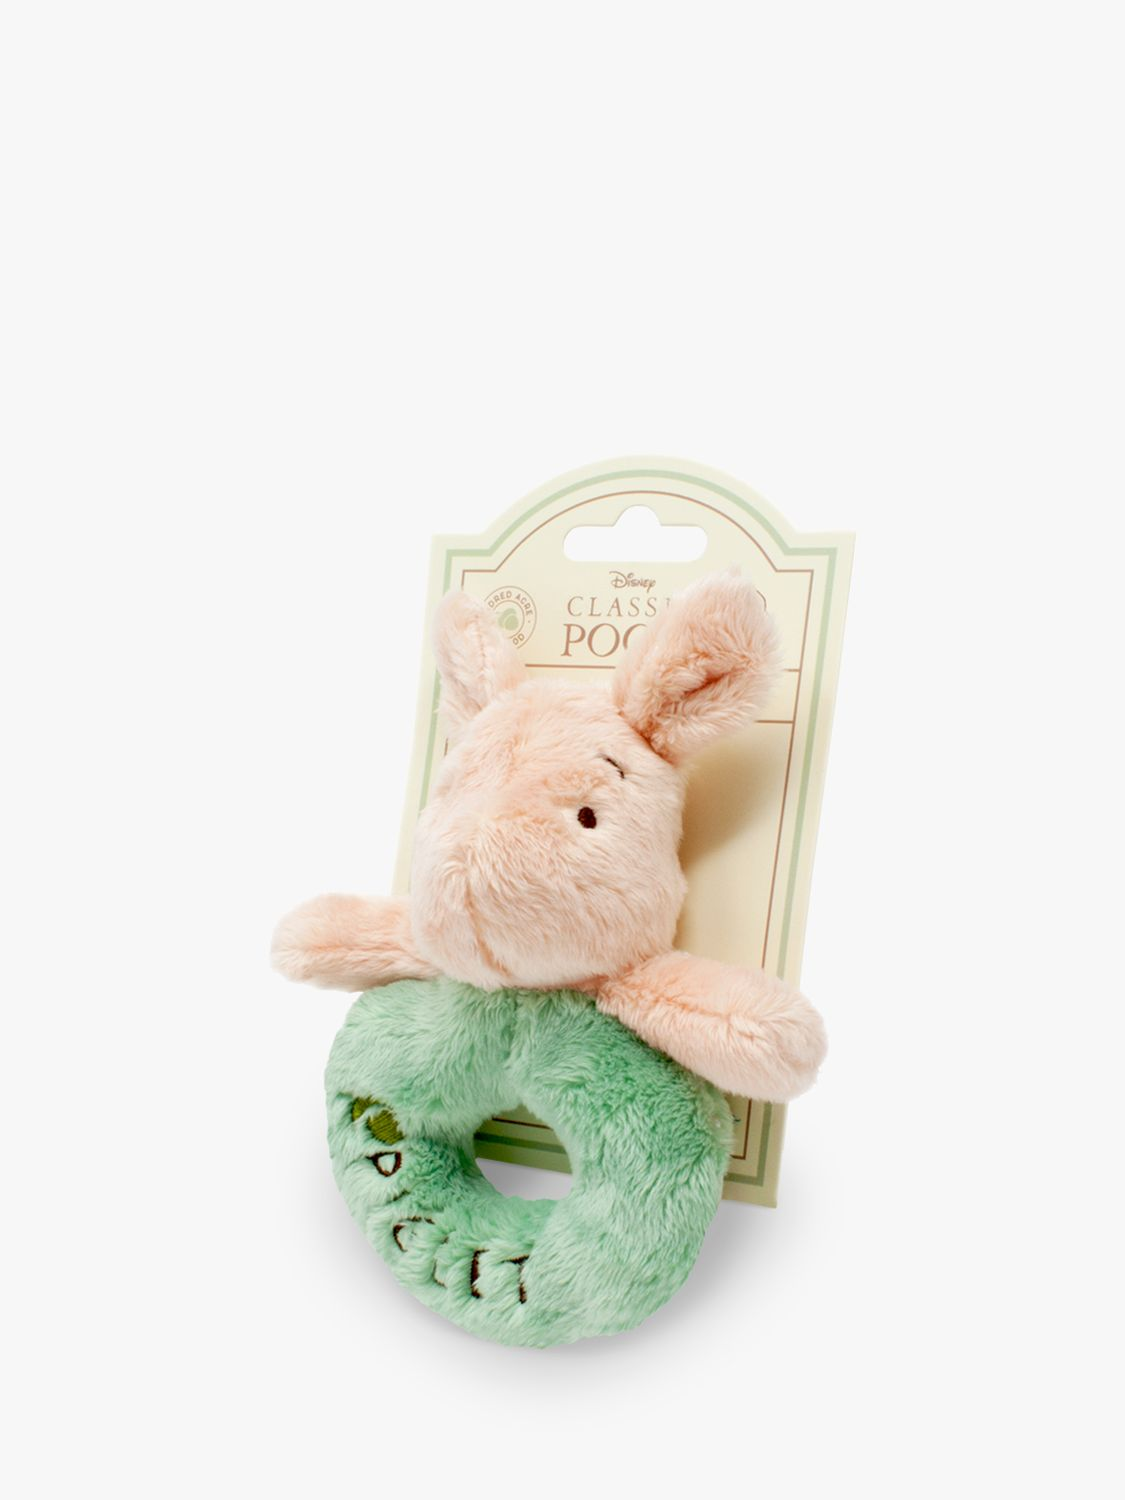 Winnie the pooh Winnie the Pooh Baby Piglet Ring Rattle